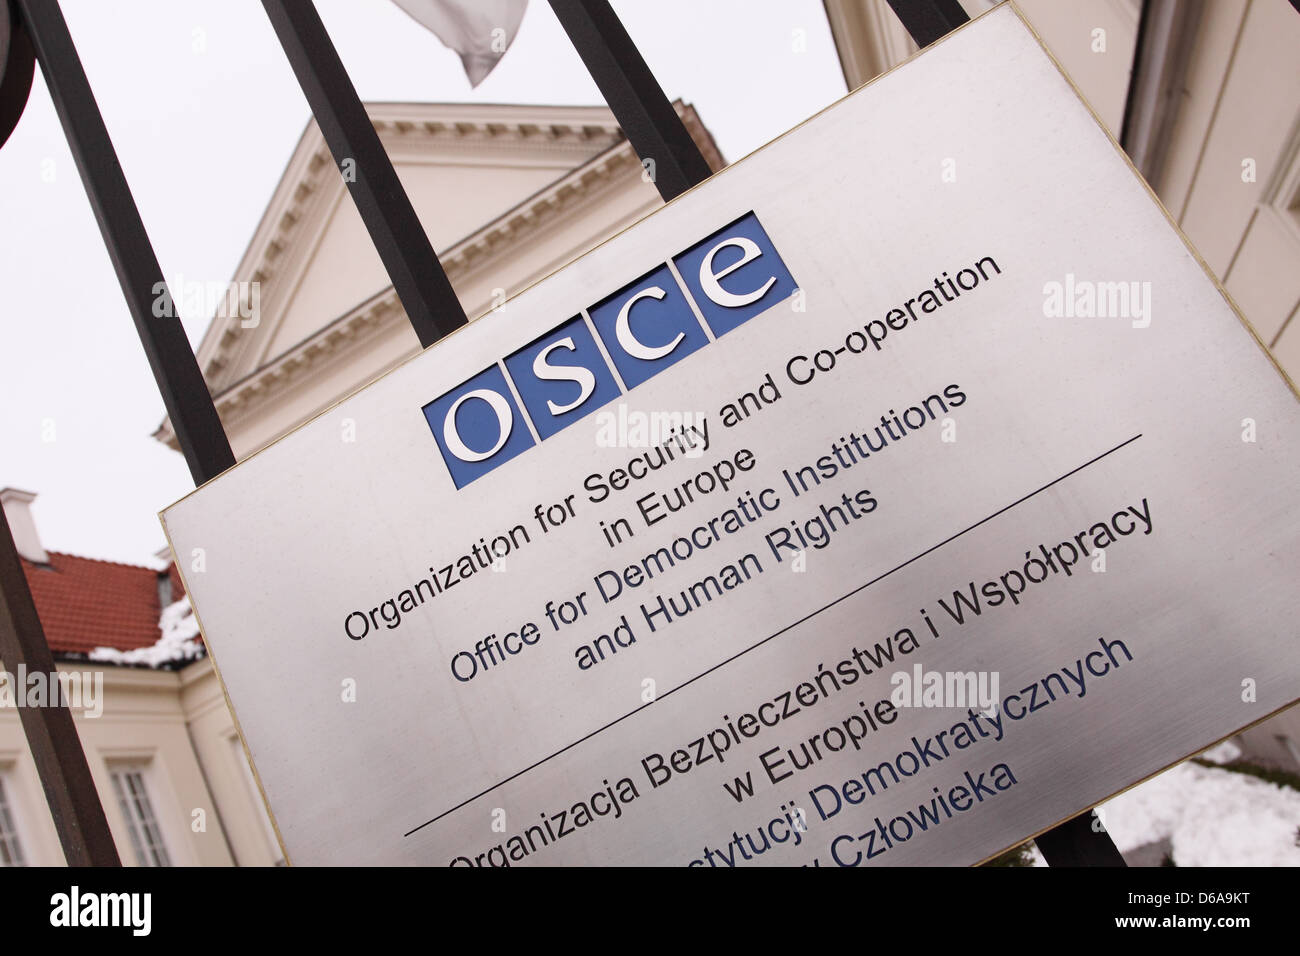 OSCE Organisation for Security and Co-operation in Europe building sign - Stock Image